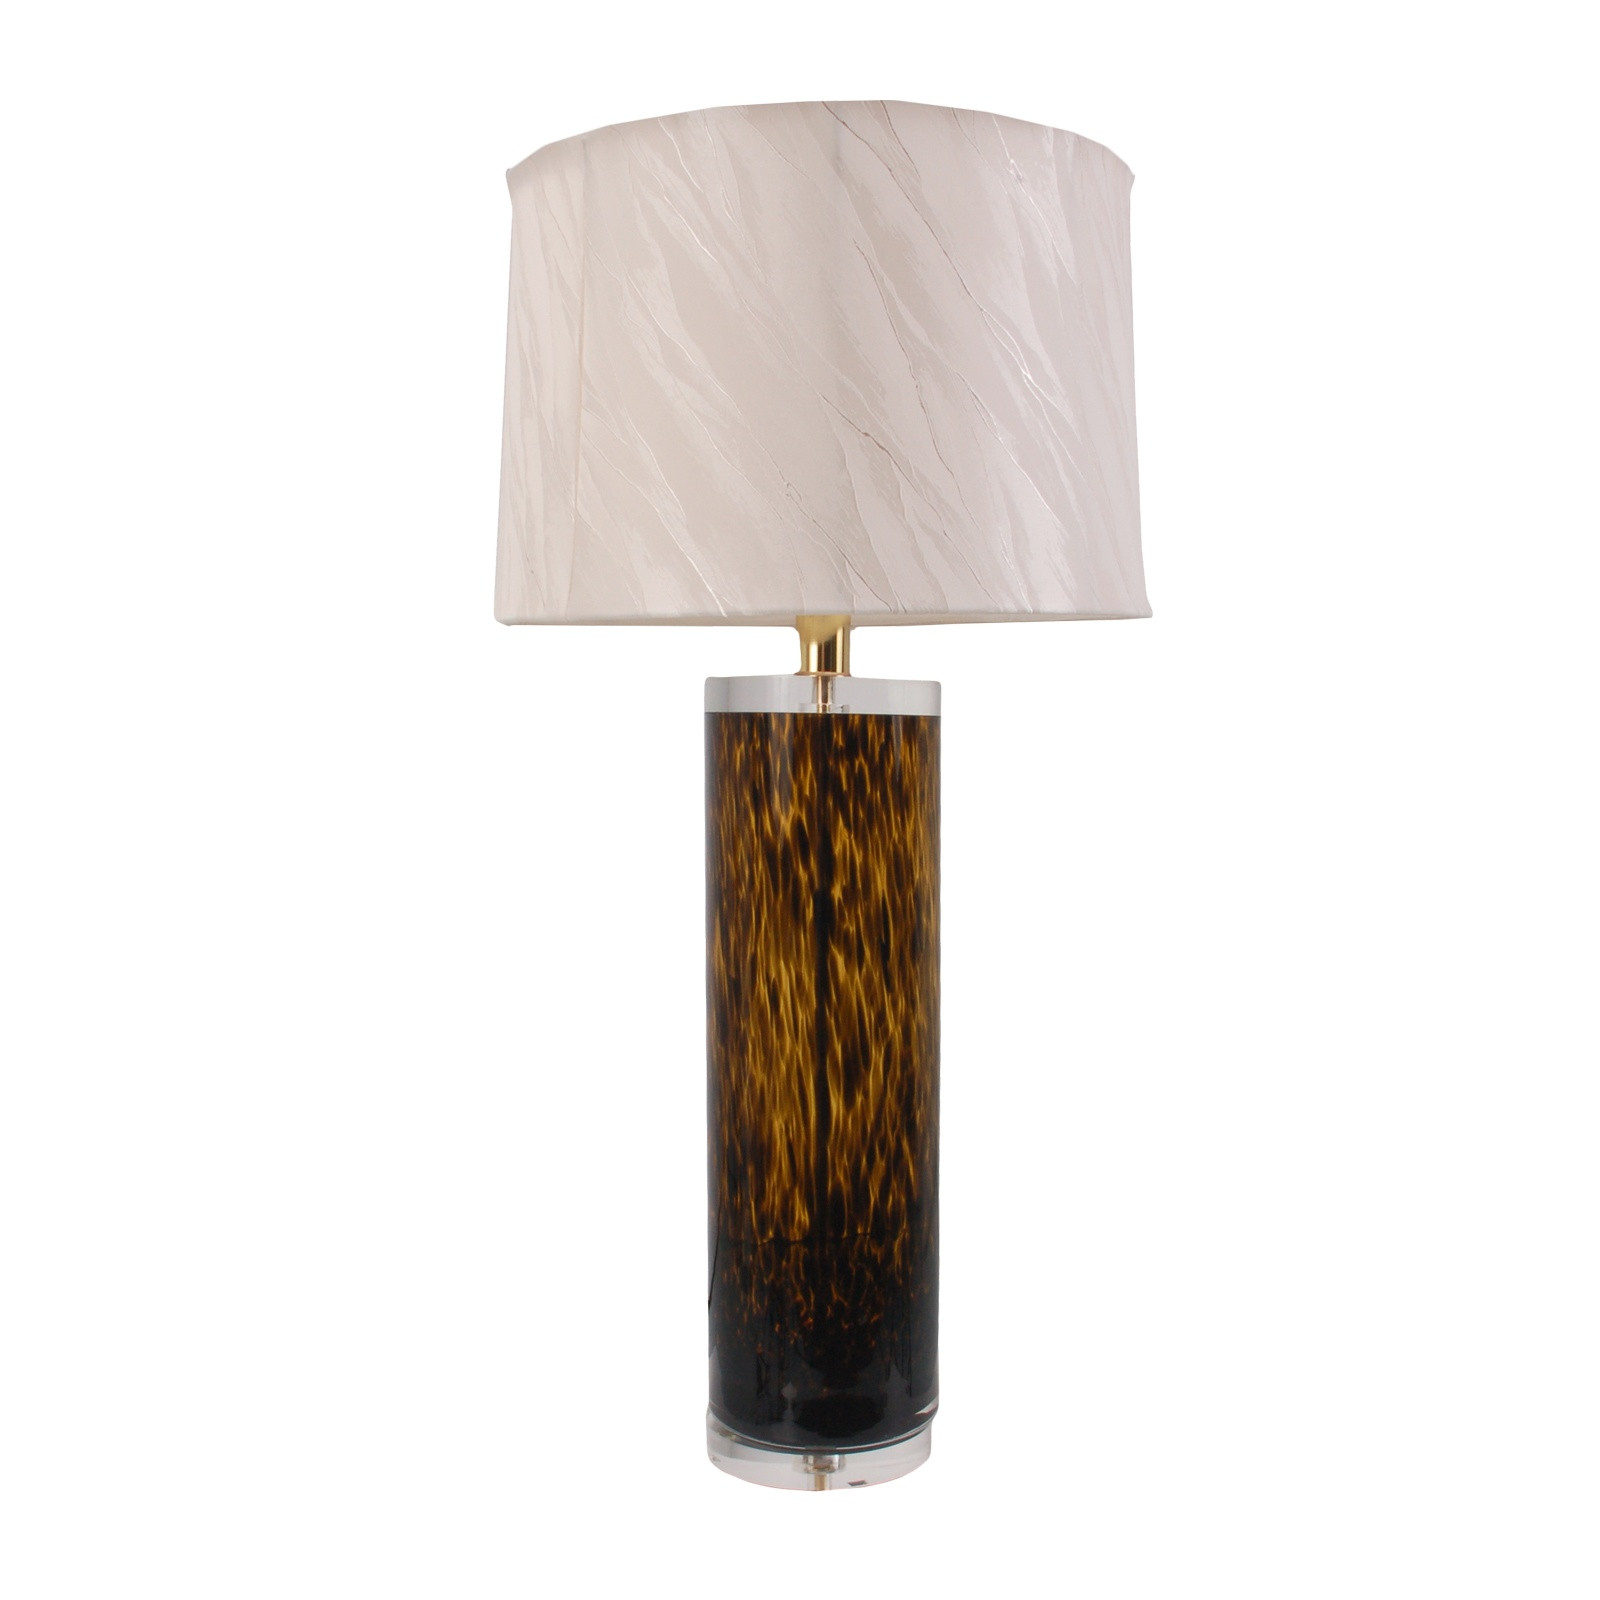 Best ideas about Tall Desk Lamp . Save or Pin Lillie Table Lamp Tall FormDecor Now.